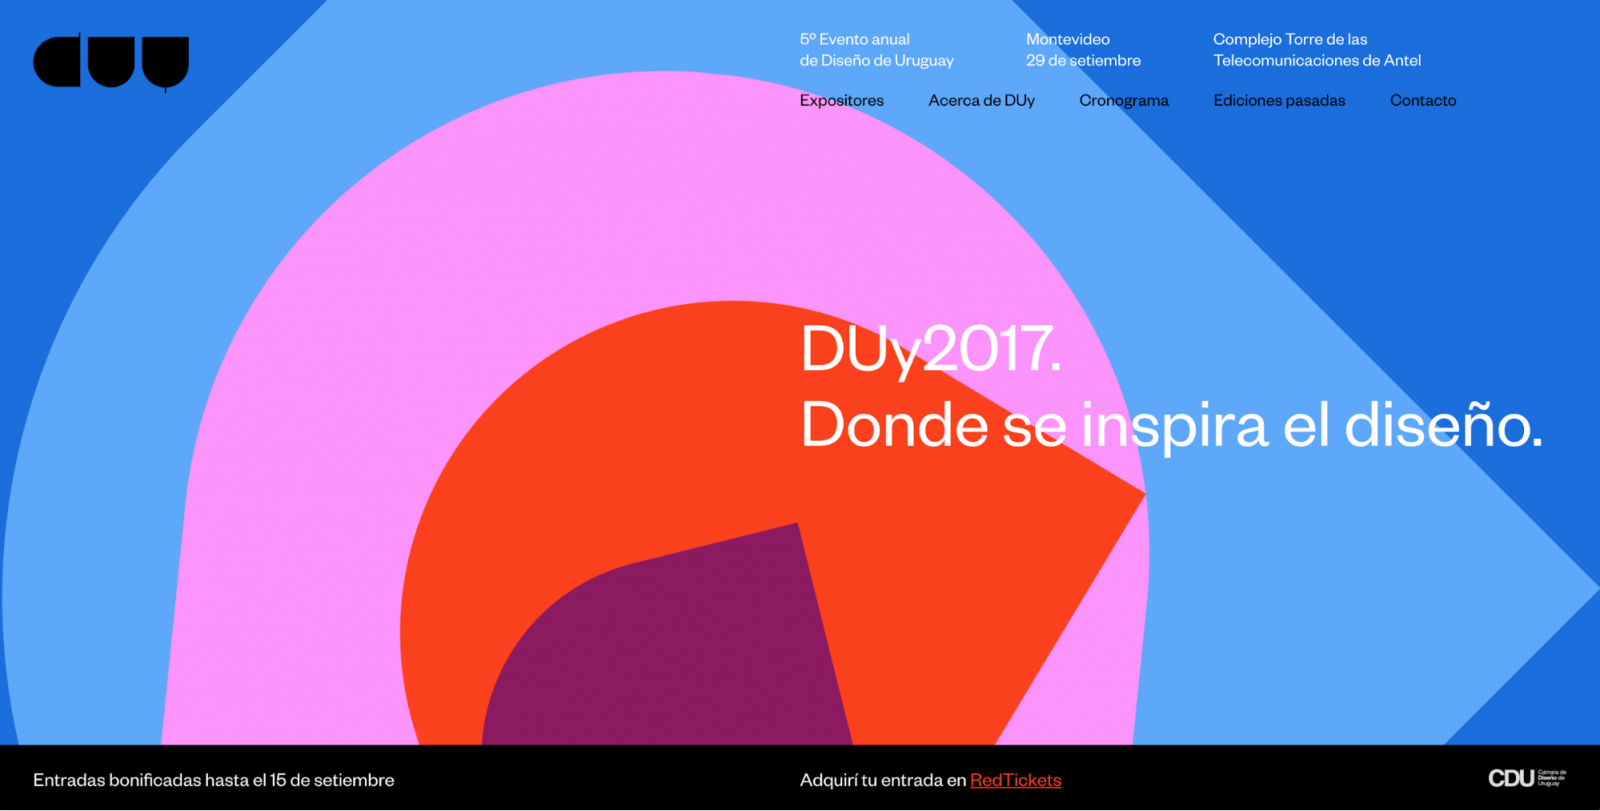 web design trends 2018 - DM